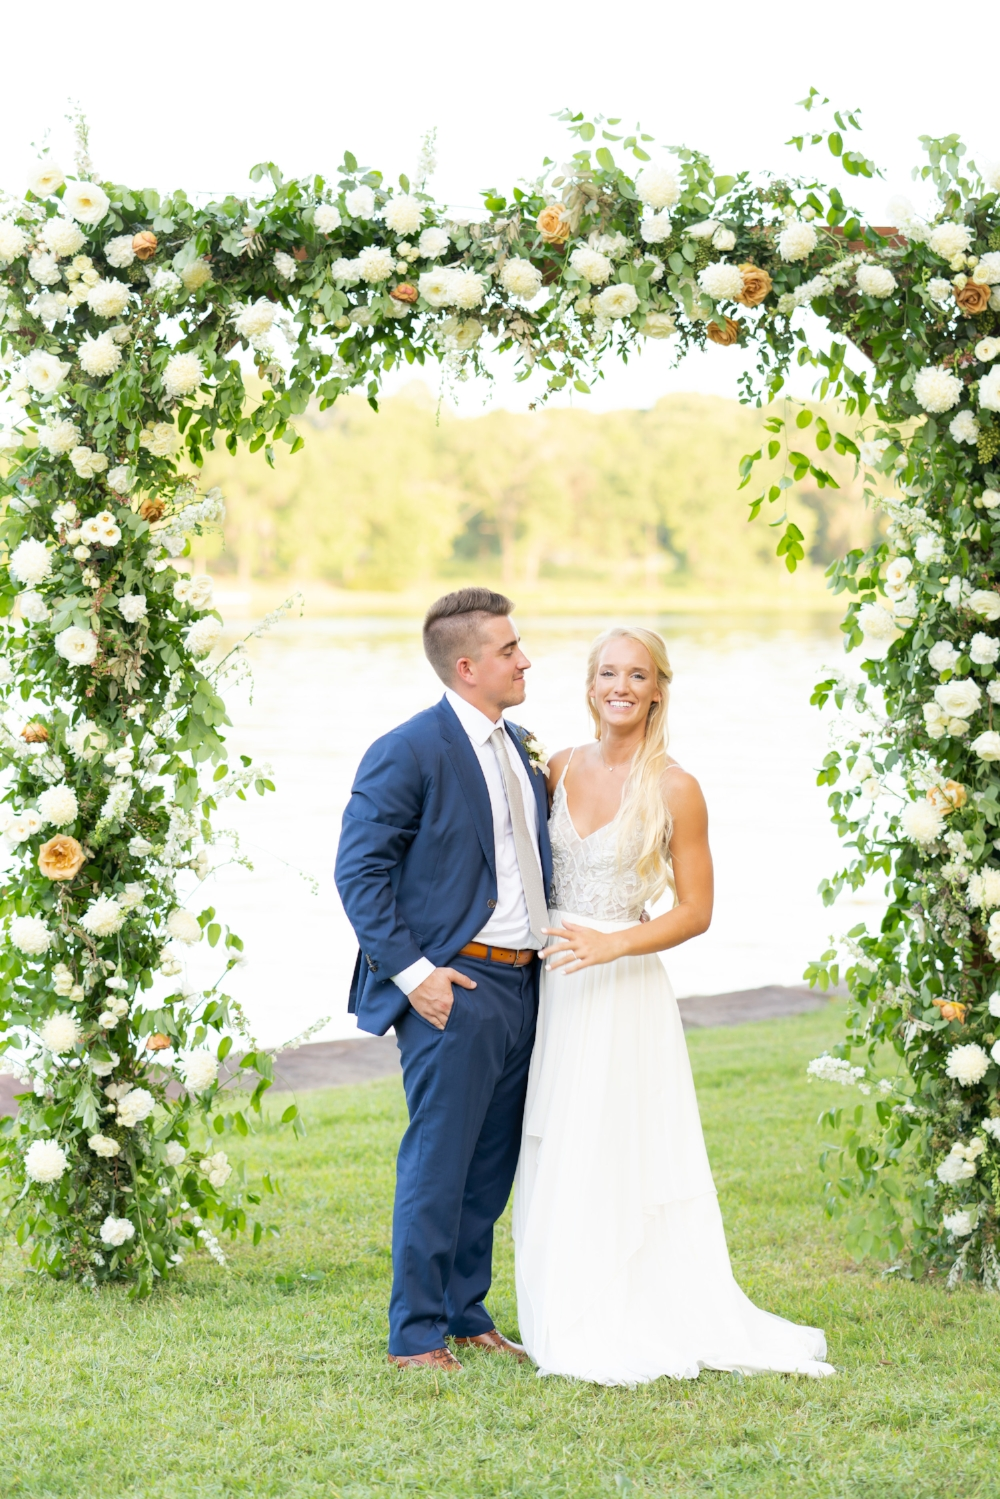 Bride and groom standing next to each other under a large floral arch.